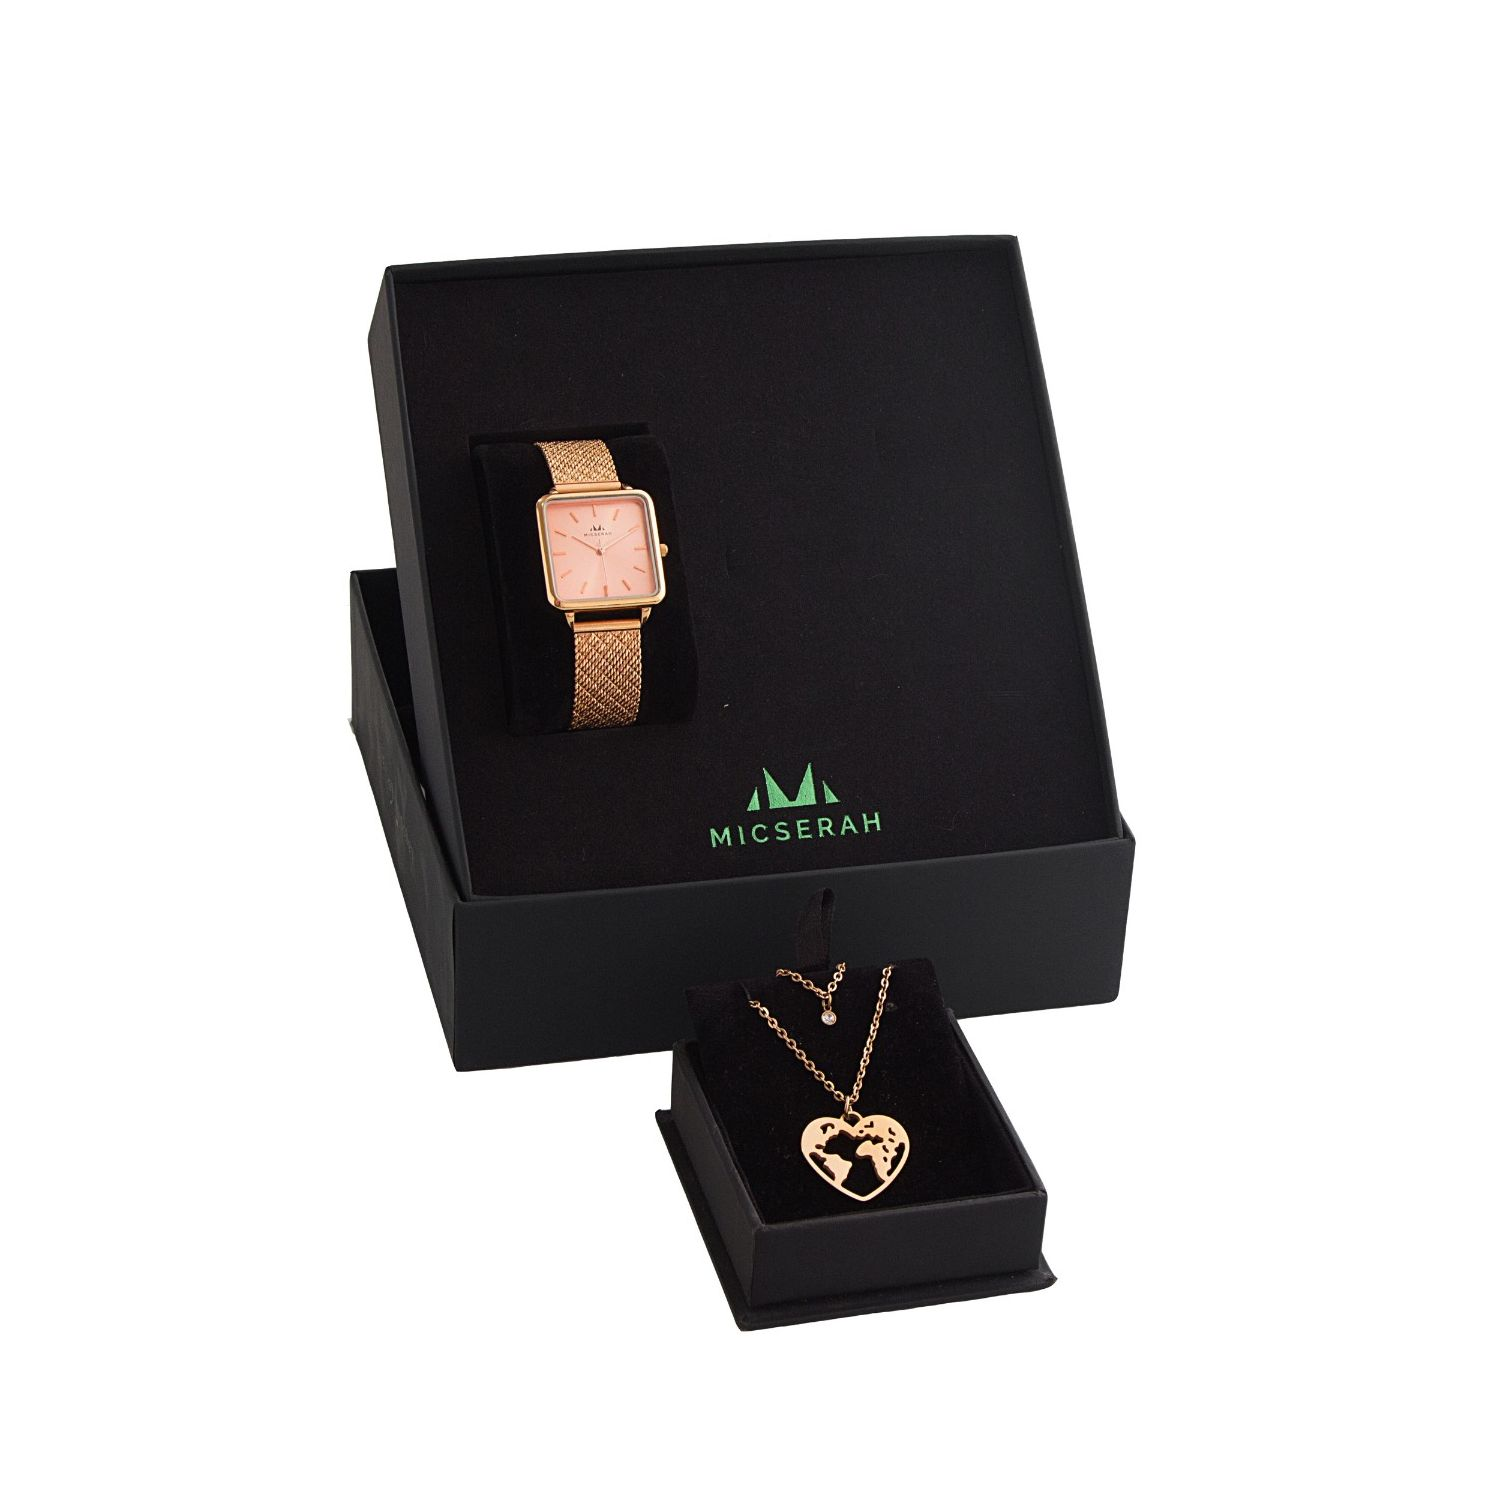 SIGNATURE EDGE CHARM GIFT SET